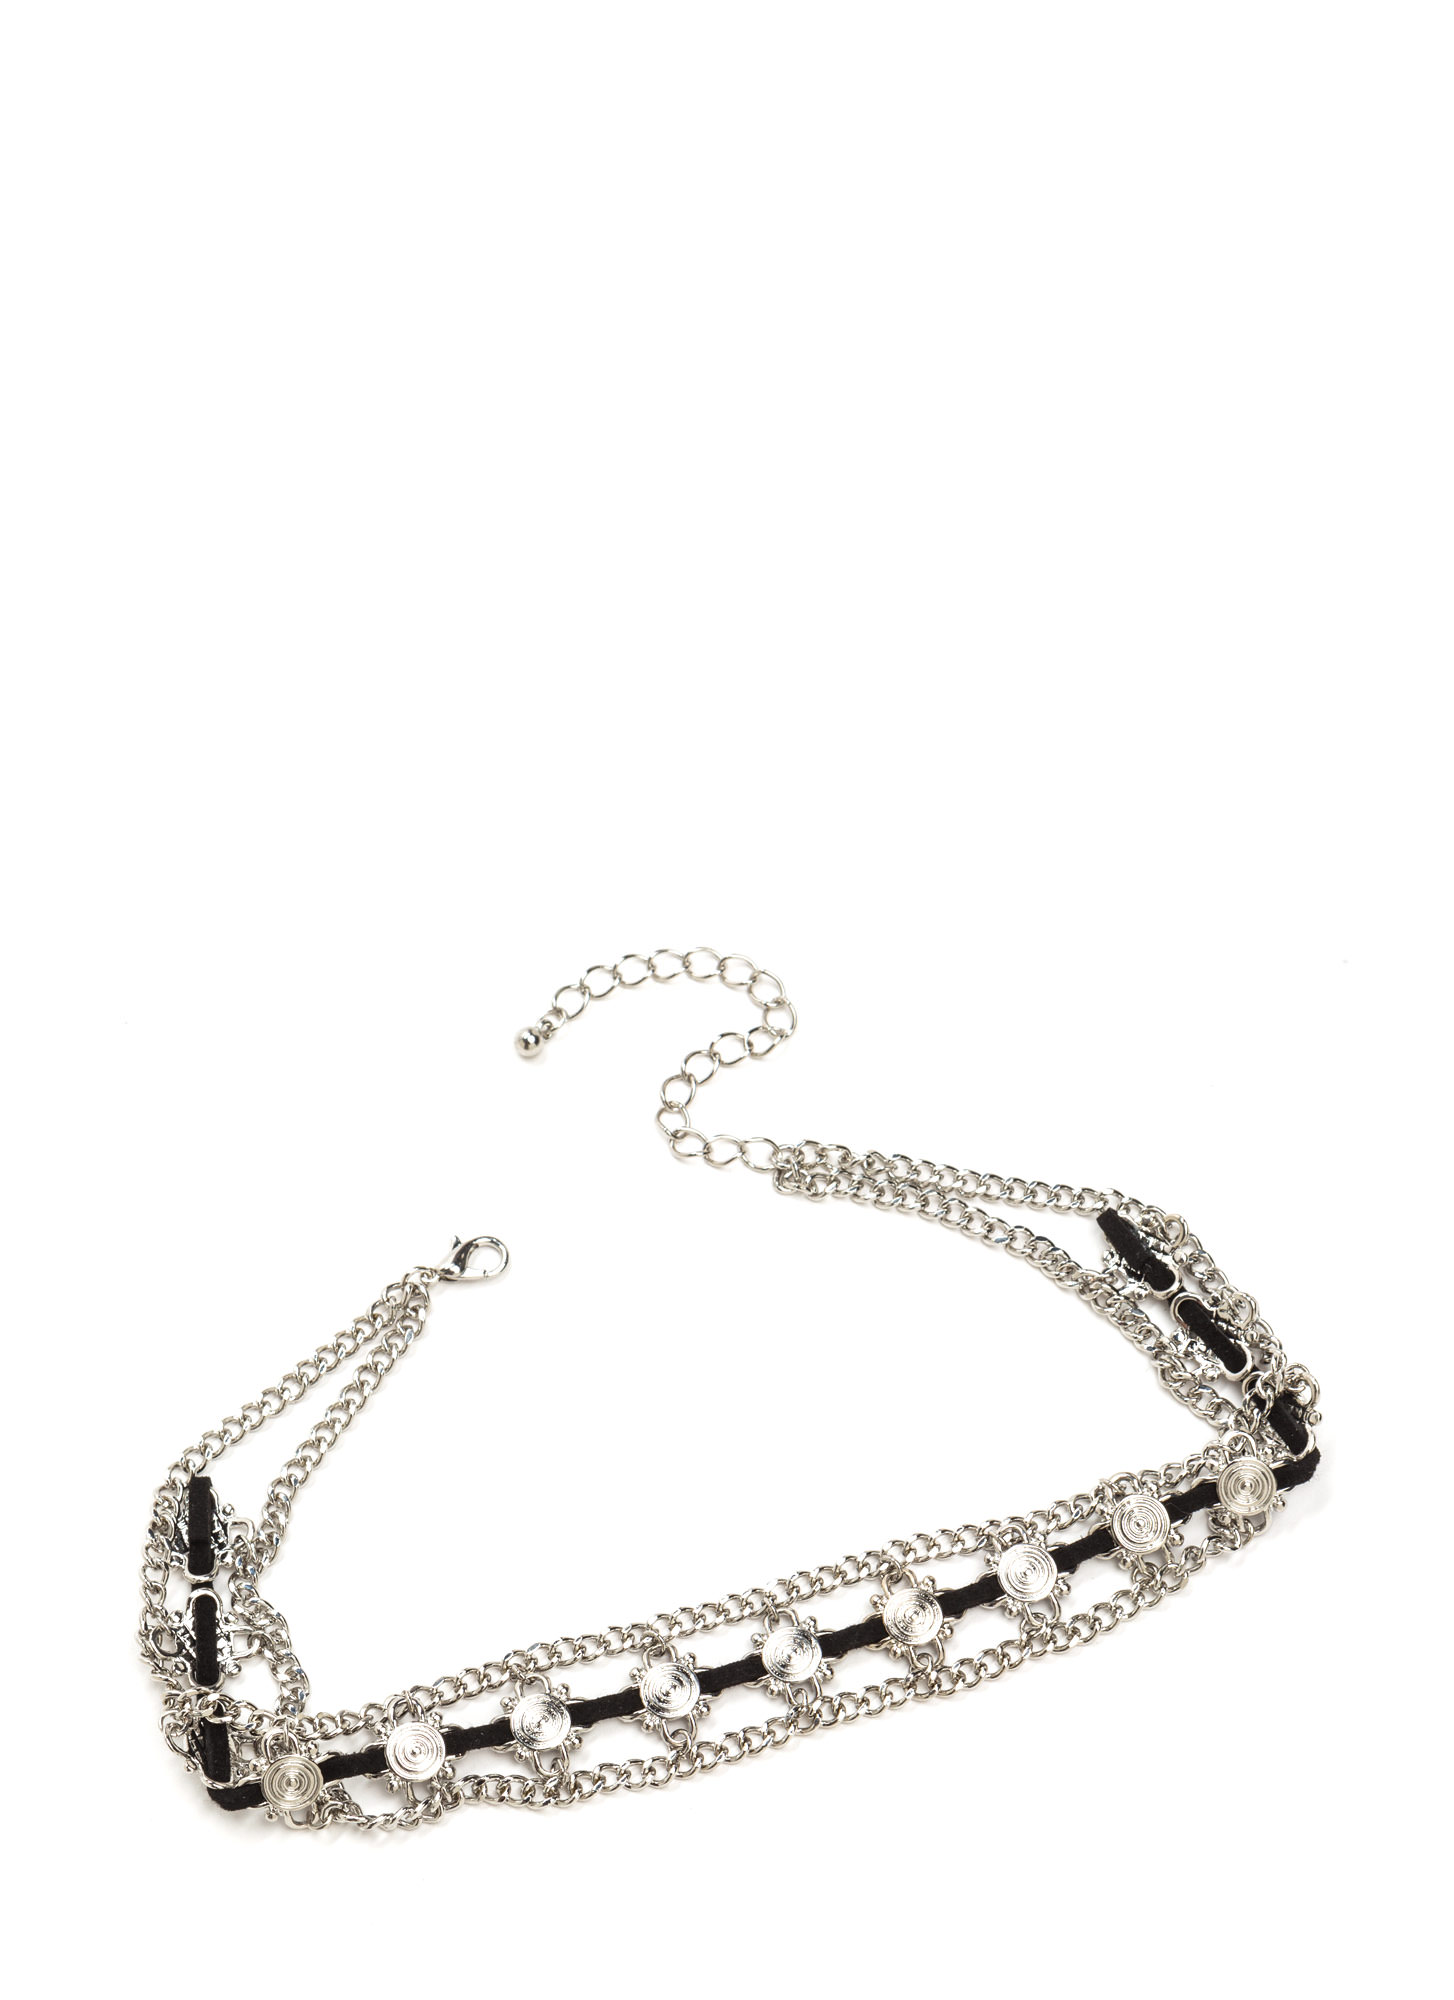 Sure Thing Textured Charm Choker SILVERBLACK